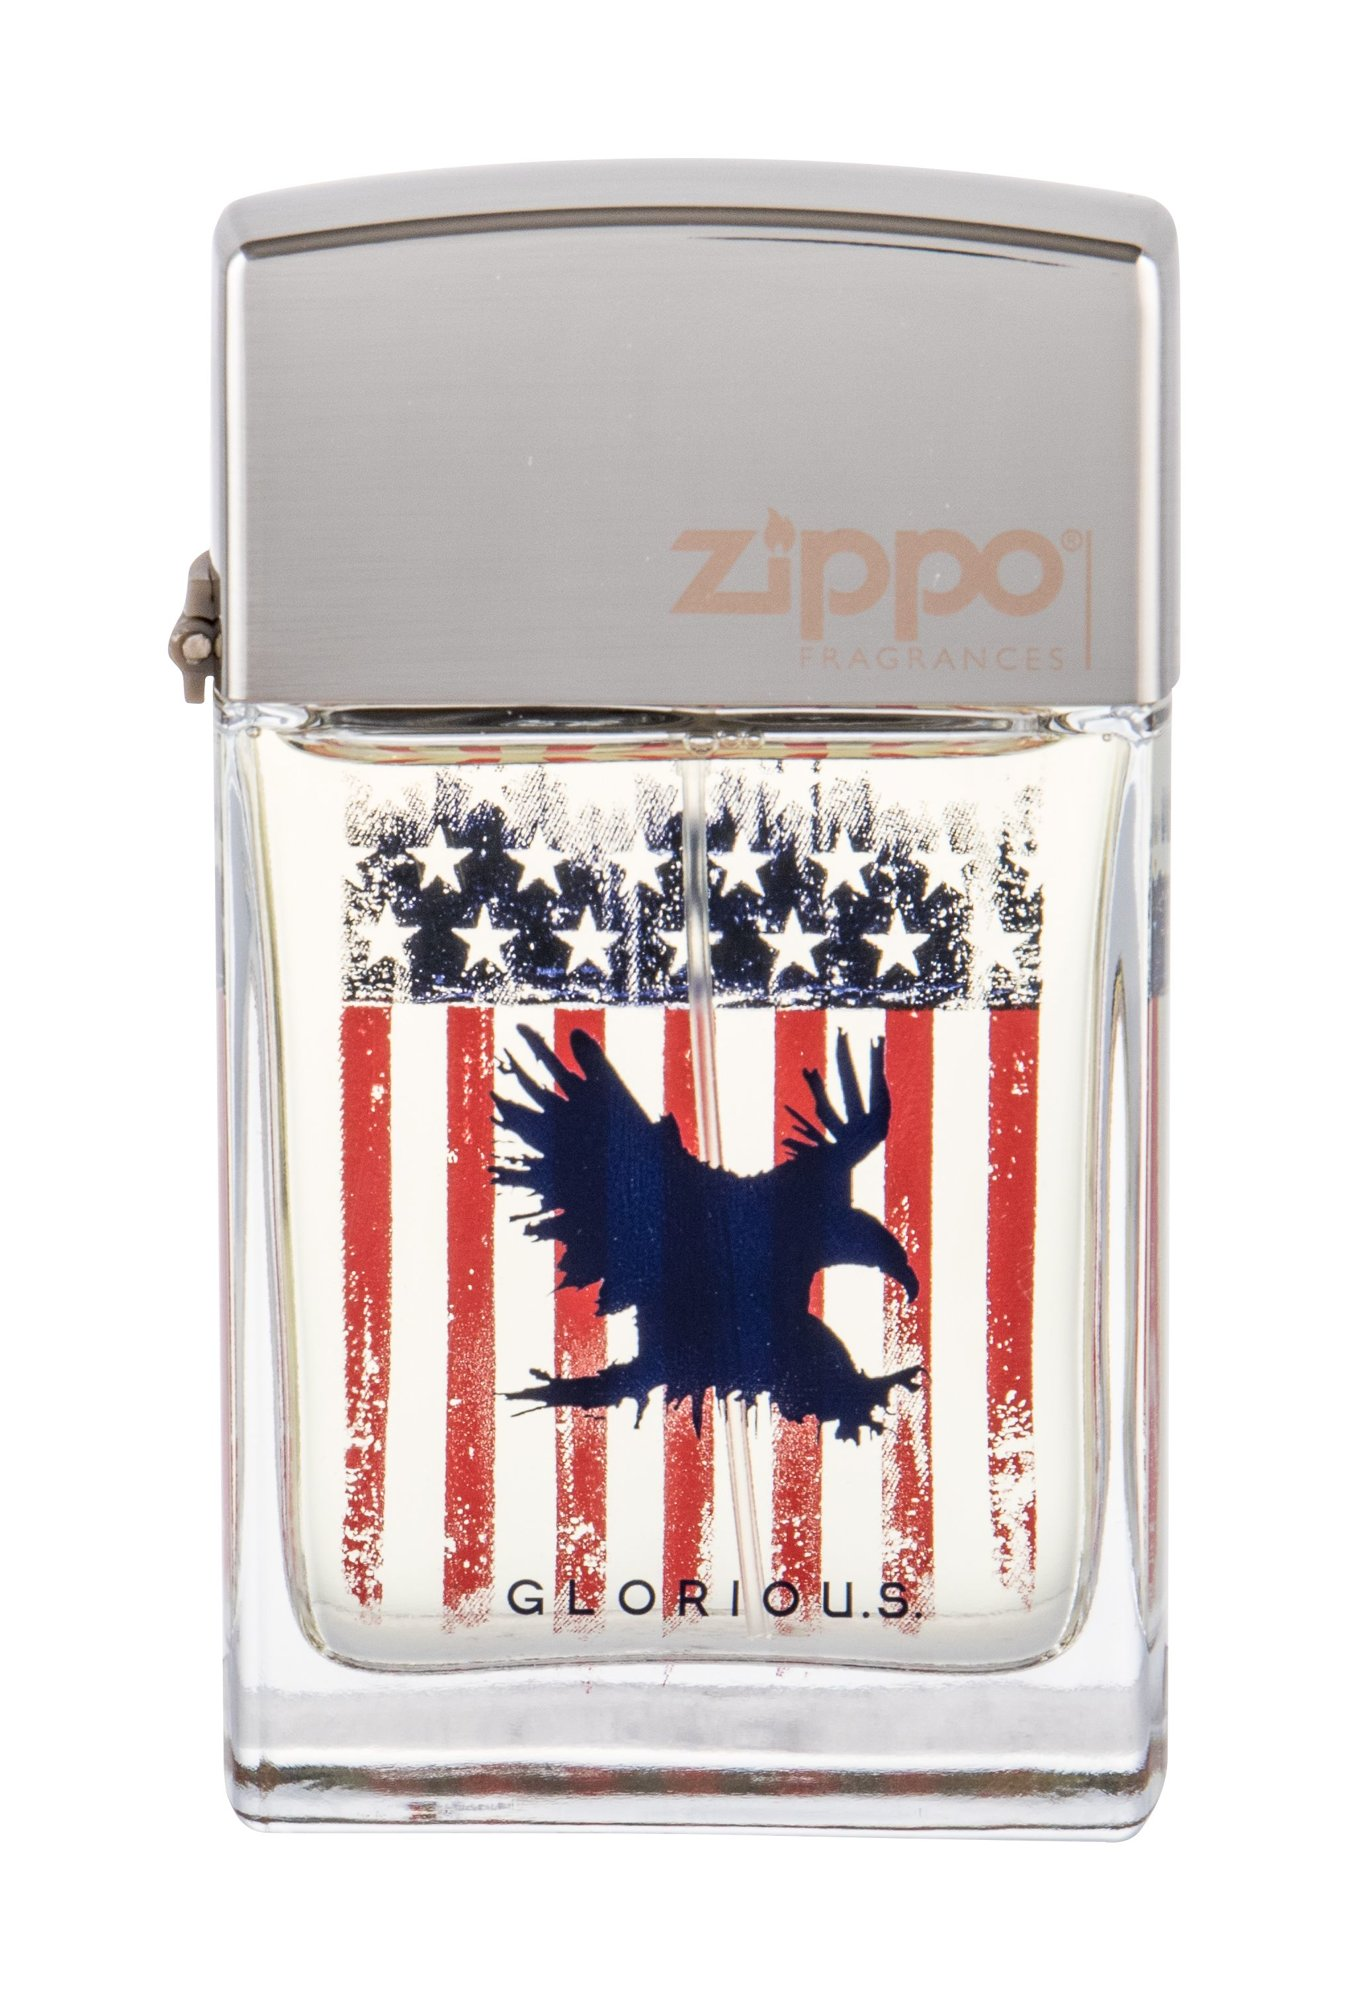 Zippo Fragrances Gloriou.s. Eau de Toilette 75ml